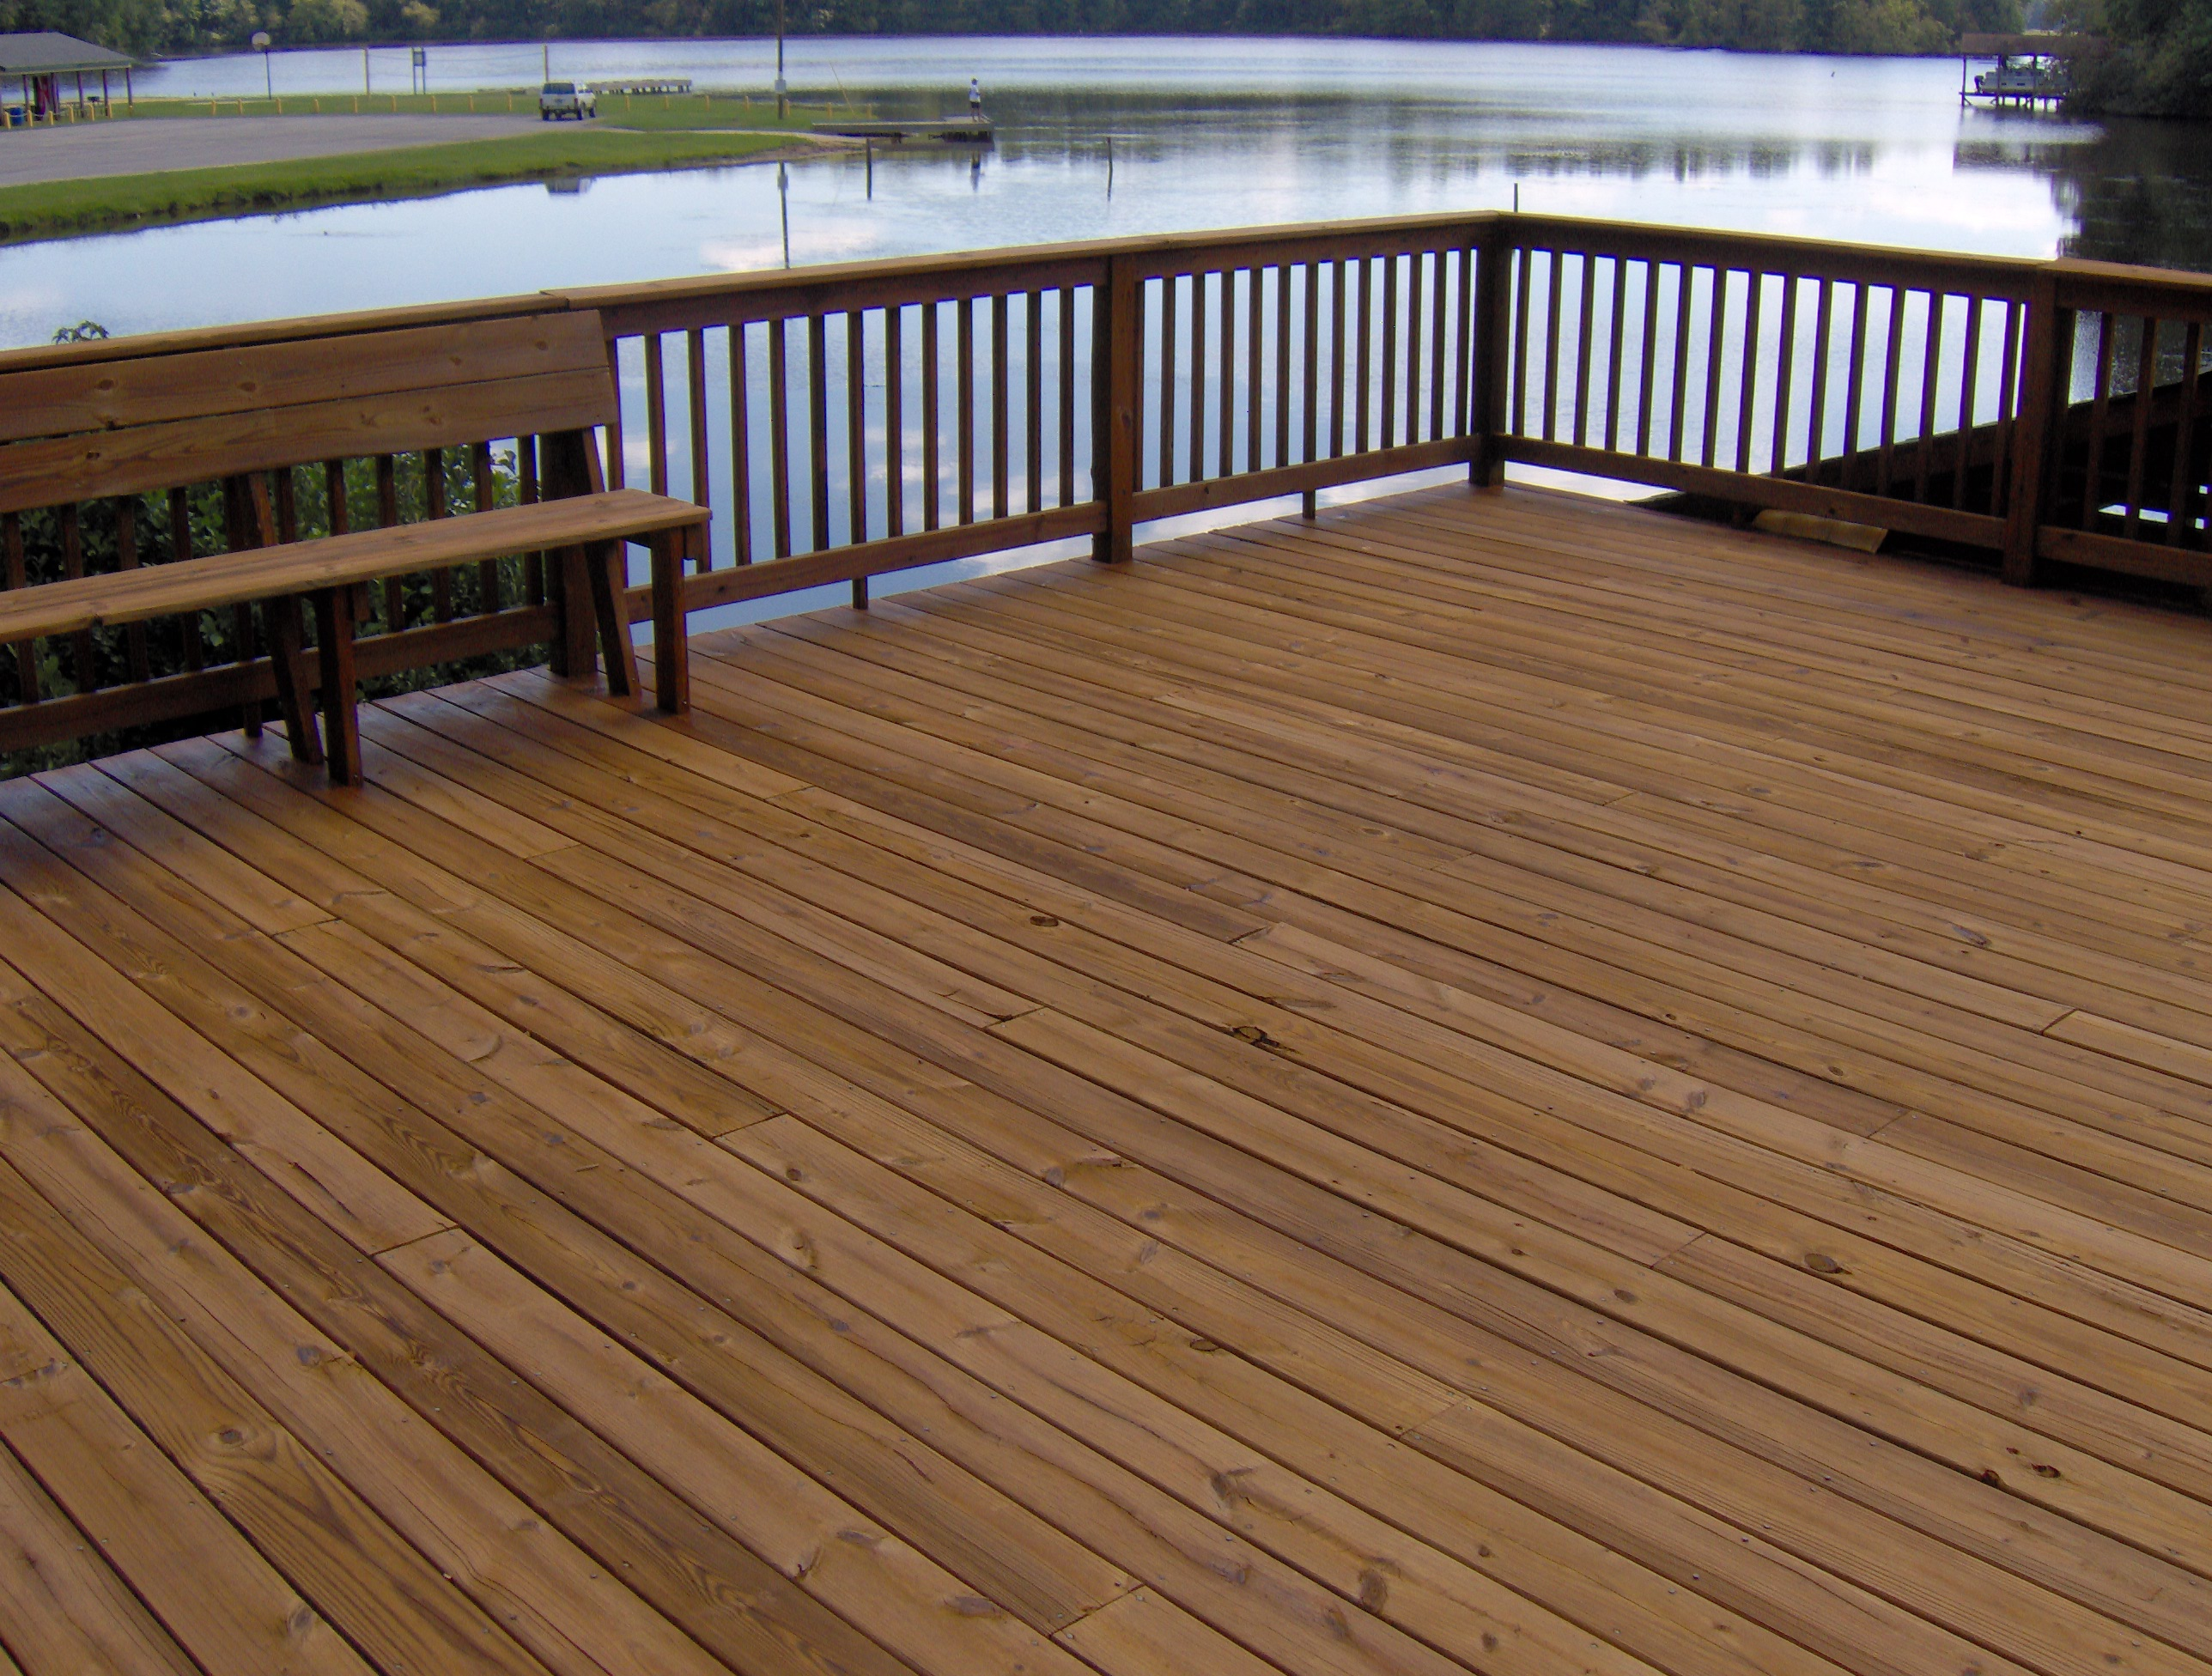 Decks docks renew crew of lake gaston kerr lake and for Compare composite decking brands